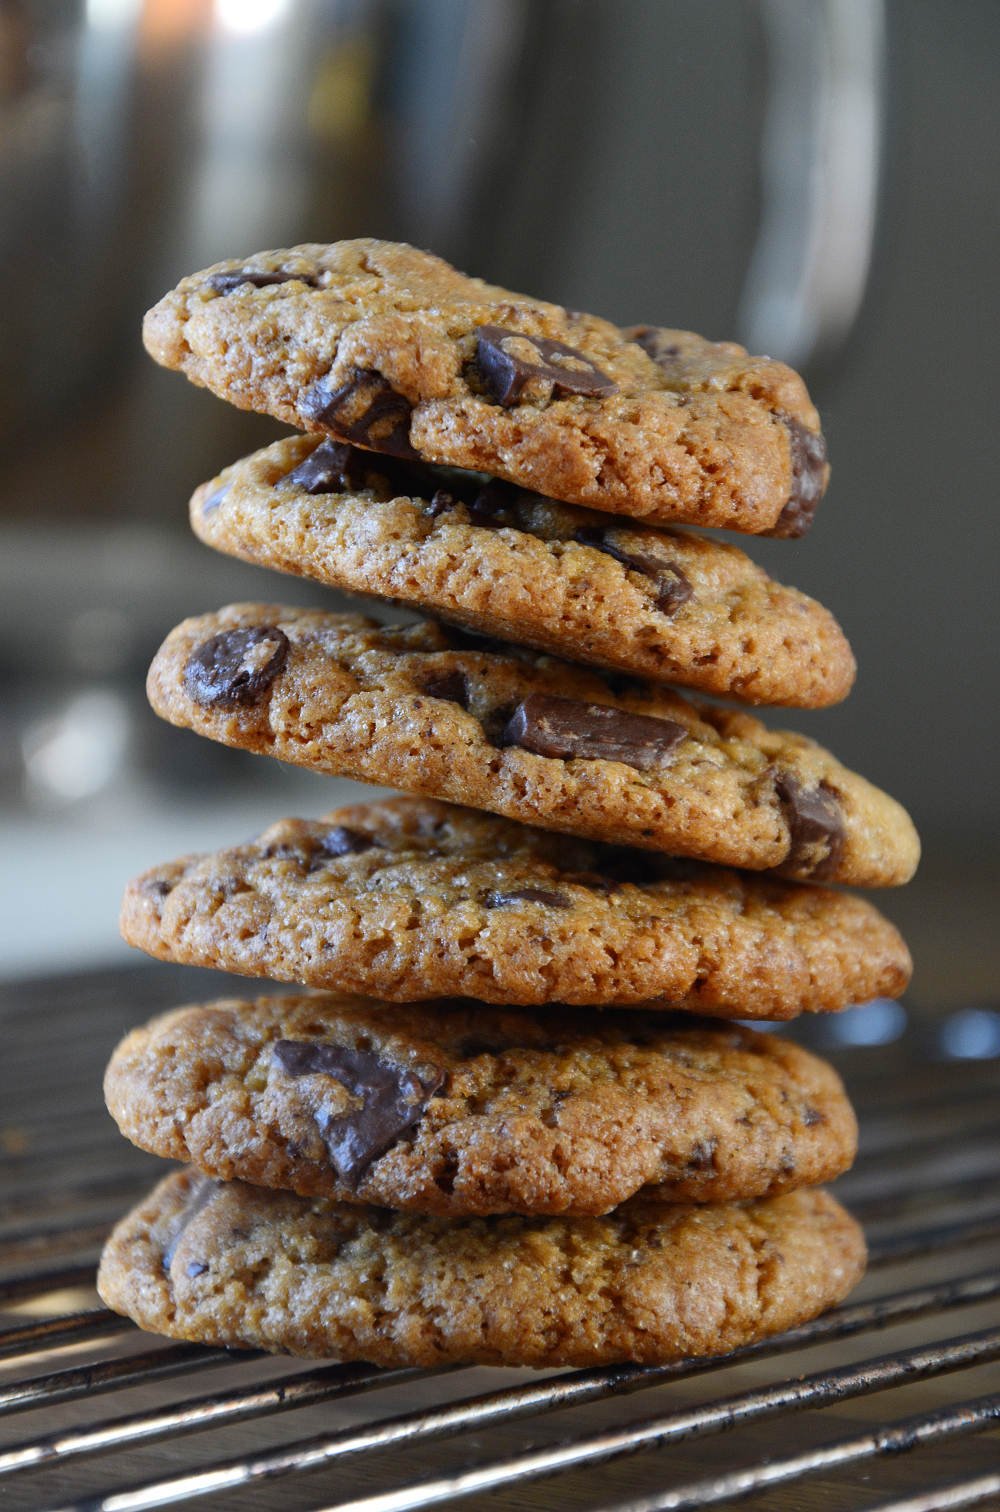 Oppskrift: Soft baked cookies